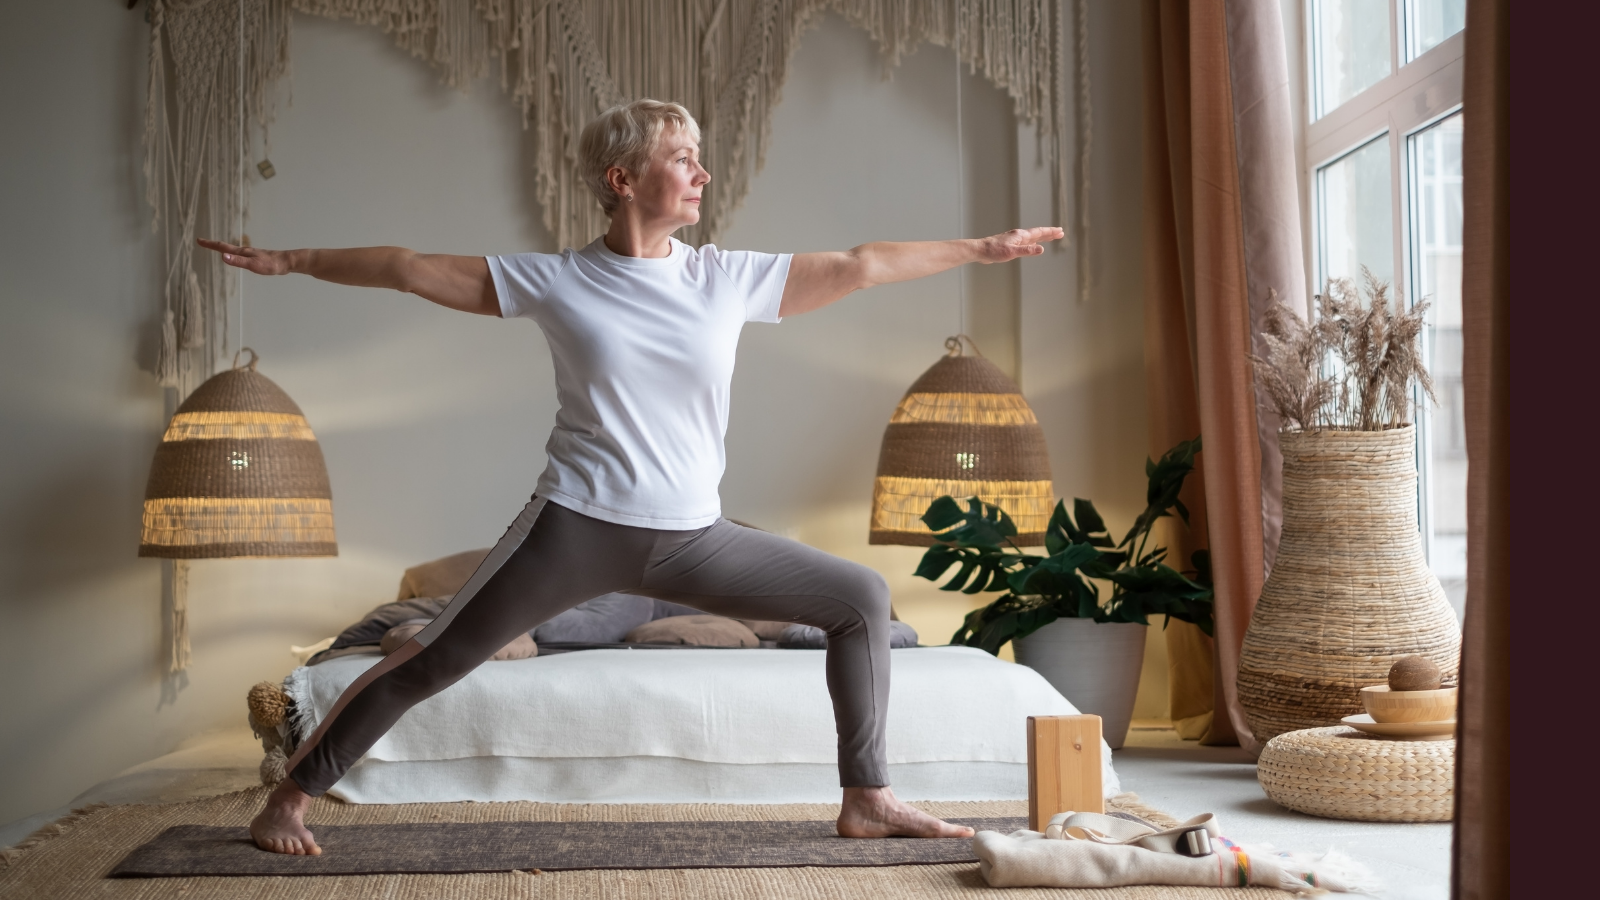 Tips for practicing yoga in Warrior II pose (Virabhadrasana II) and all exercise mindfully